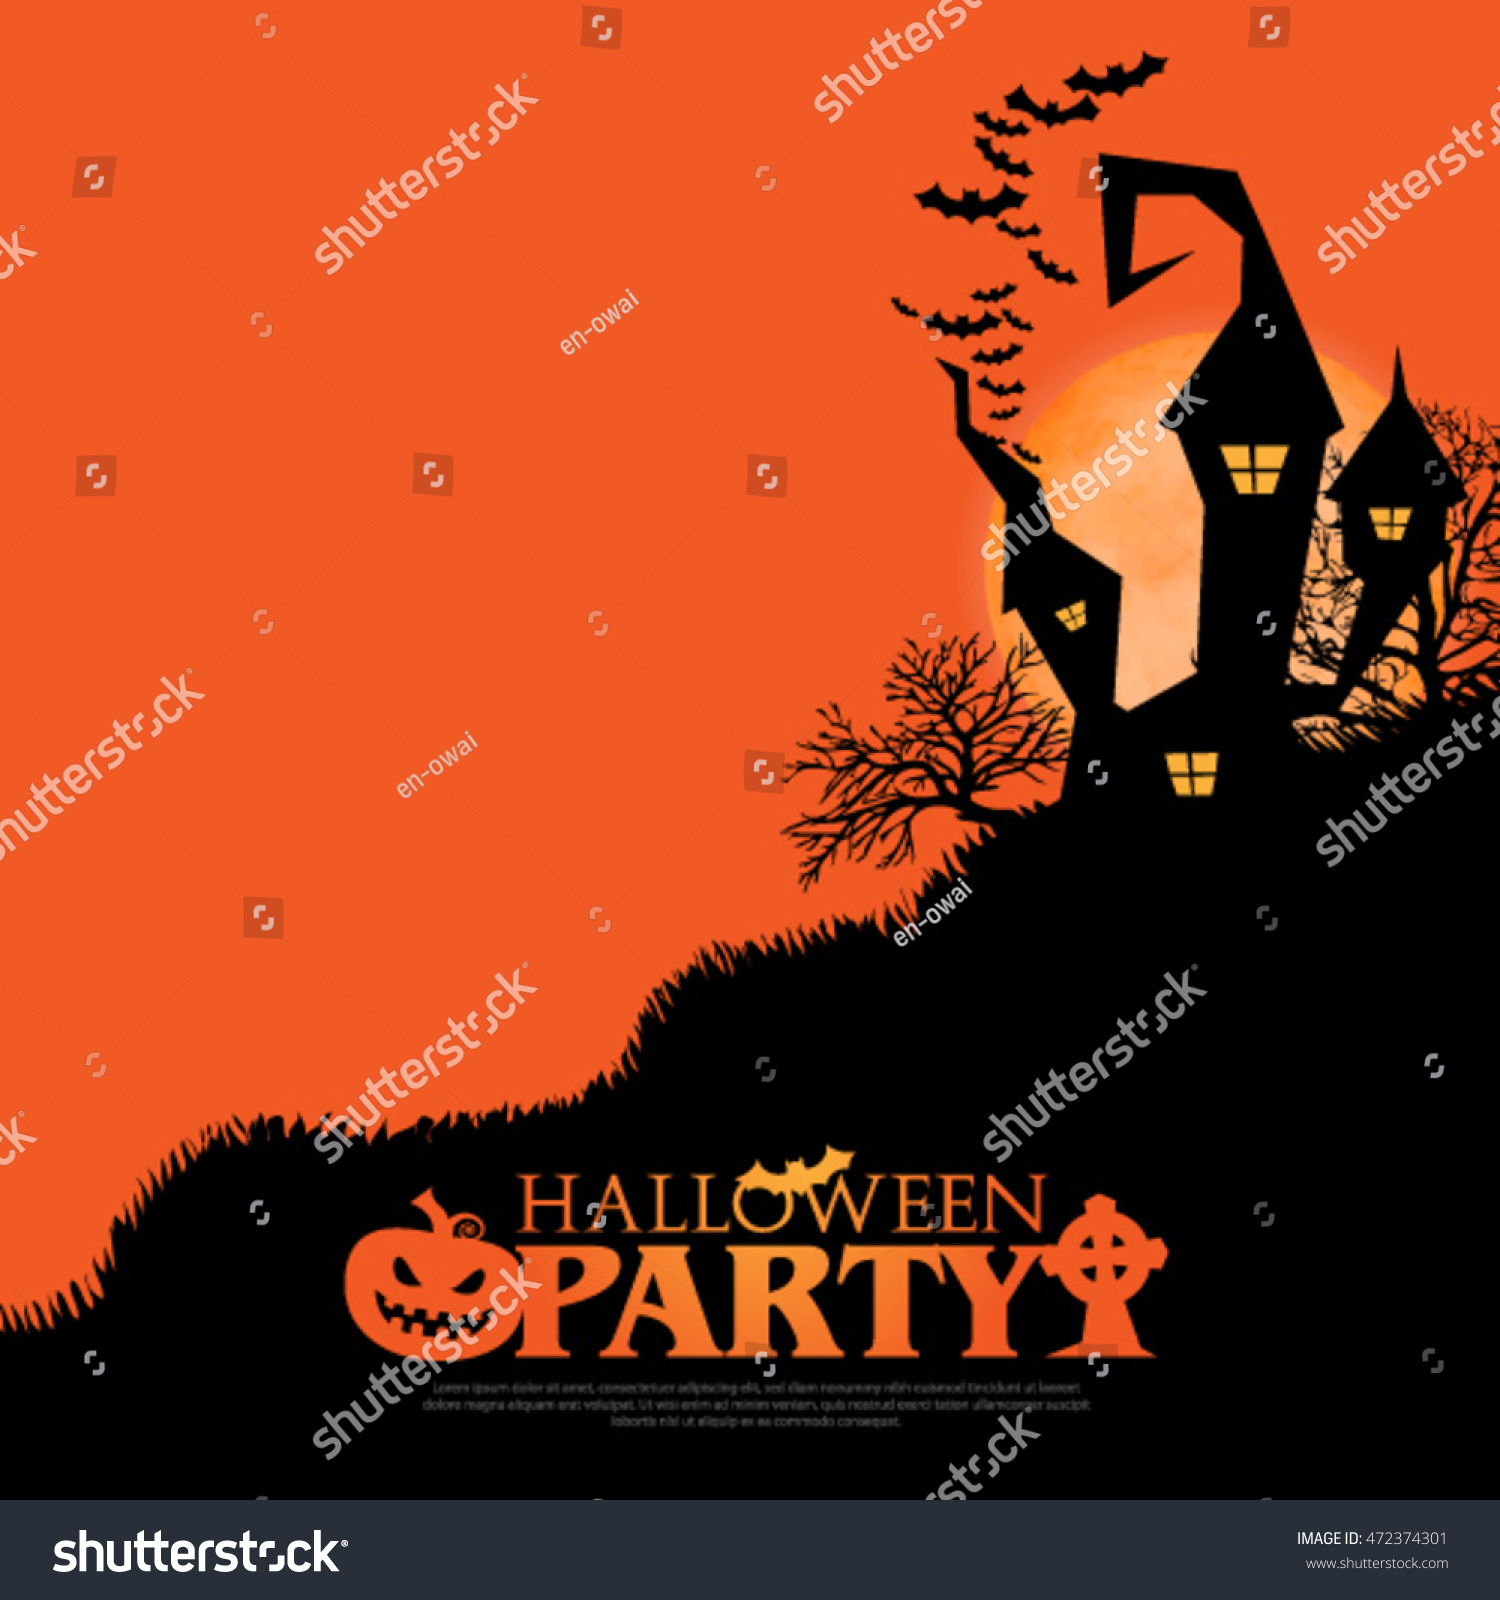 halloween layout design cover background stock vector (royalty free